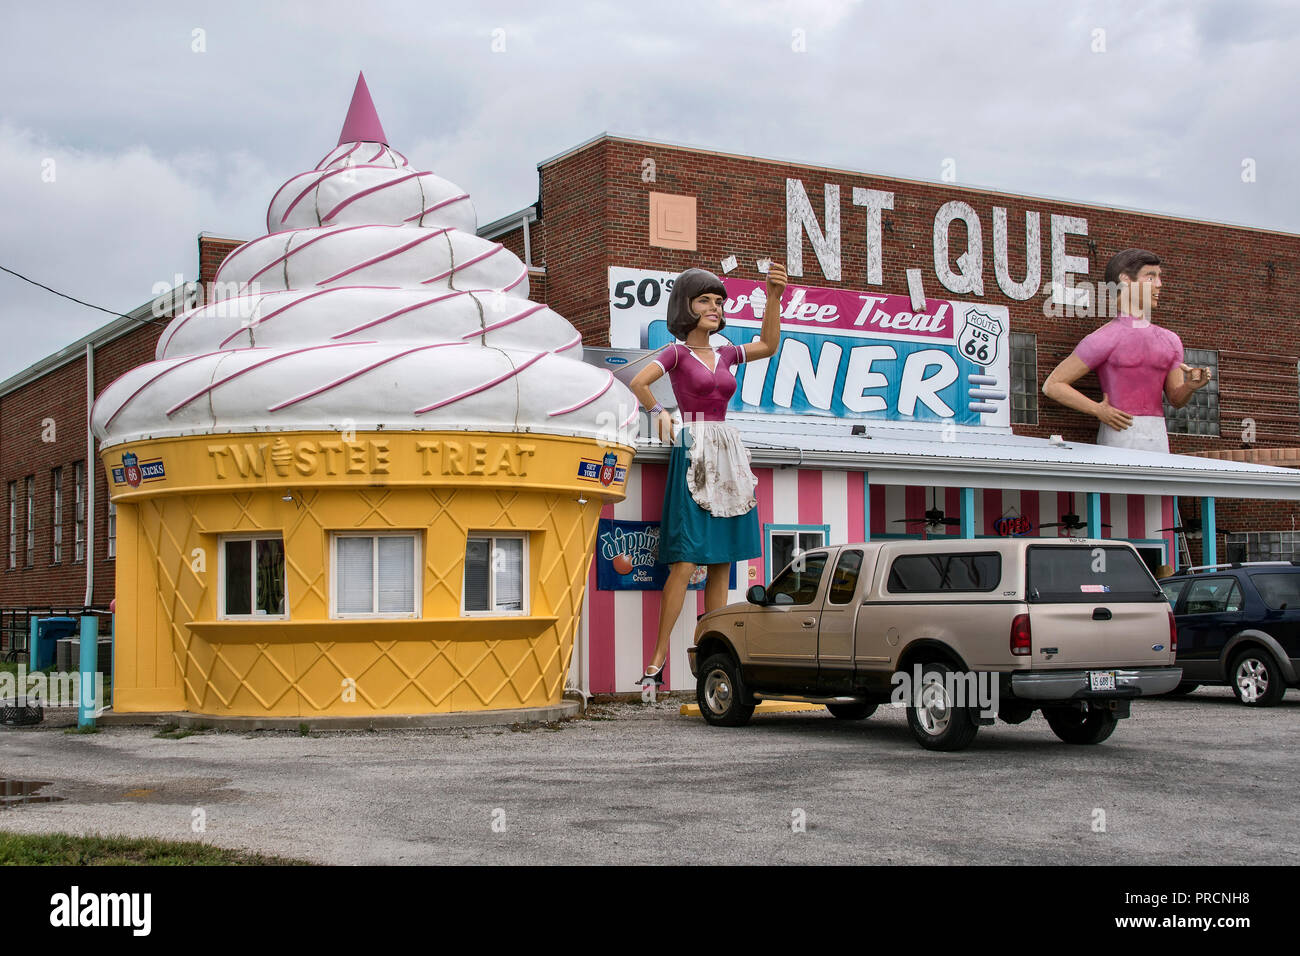 Twistee Treat Diner and Pink Elephant Antique Mall on Route 66, Livingston, Illinois, USA - Stock Image